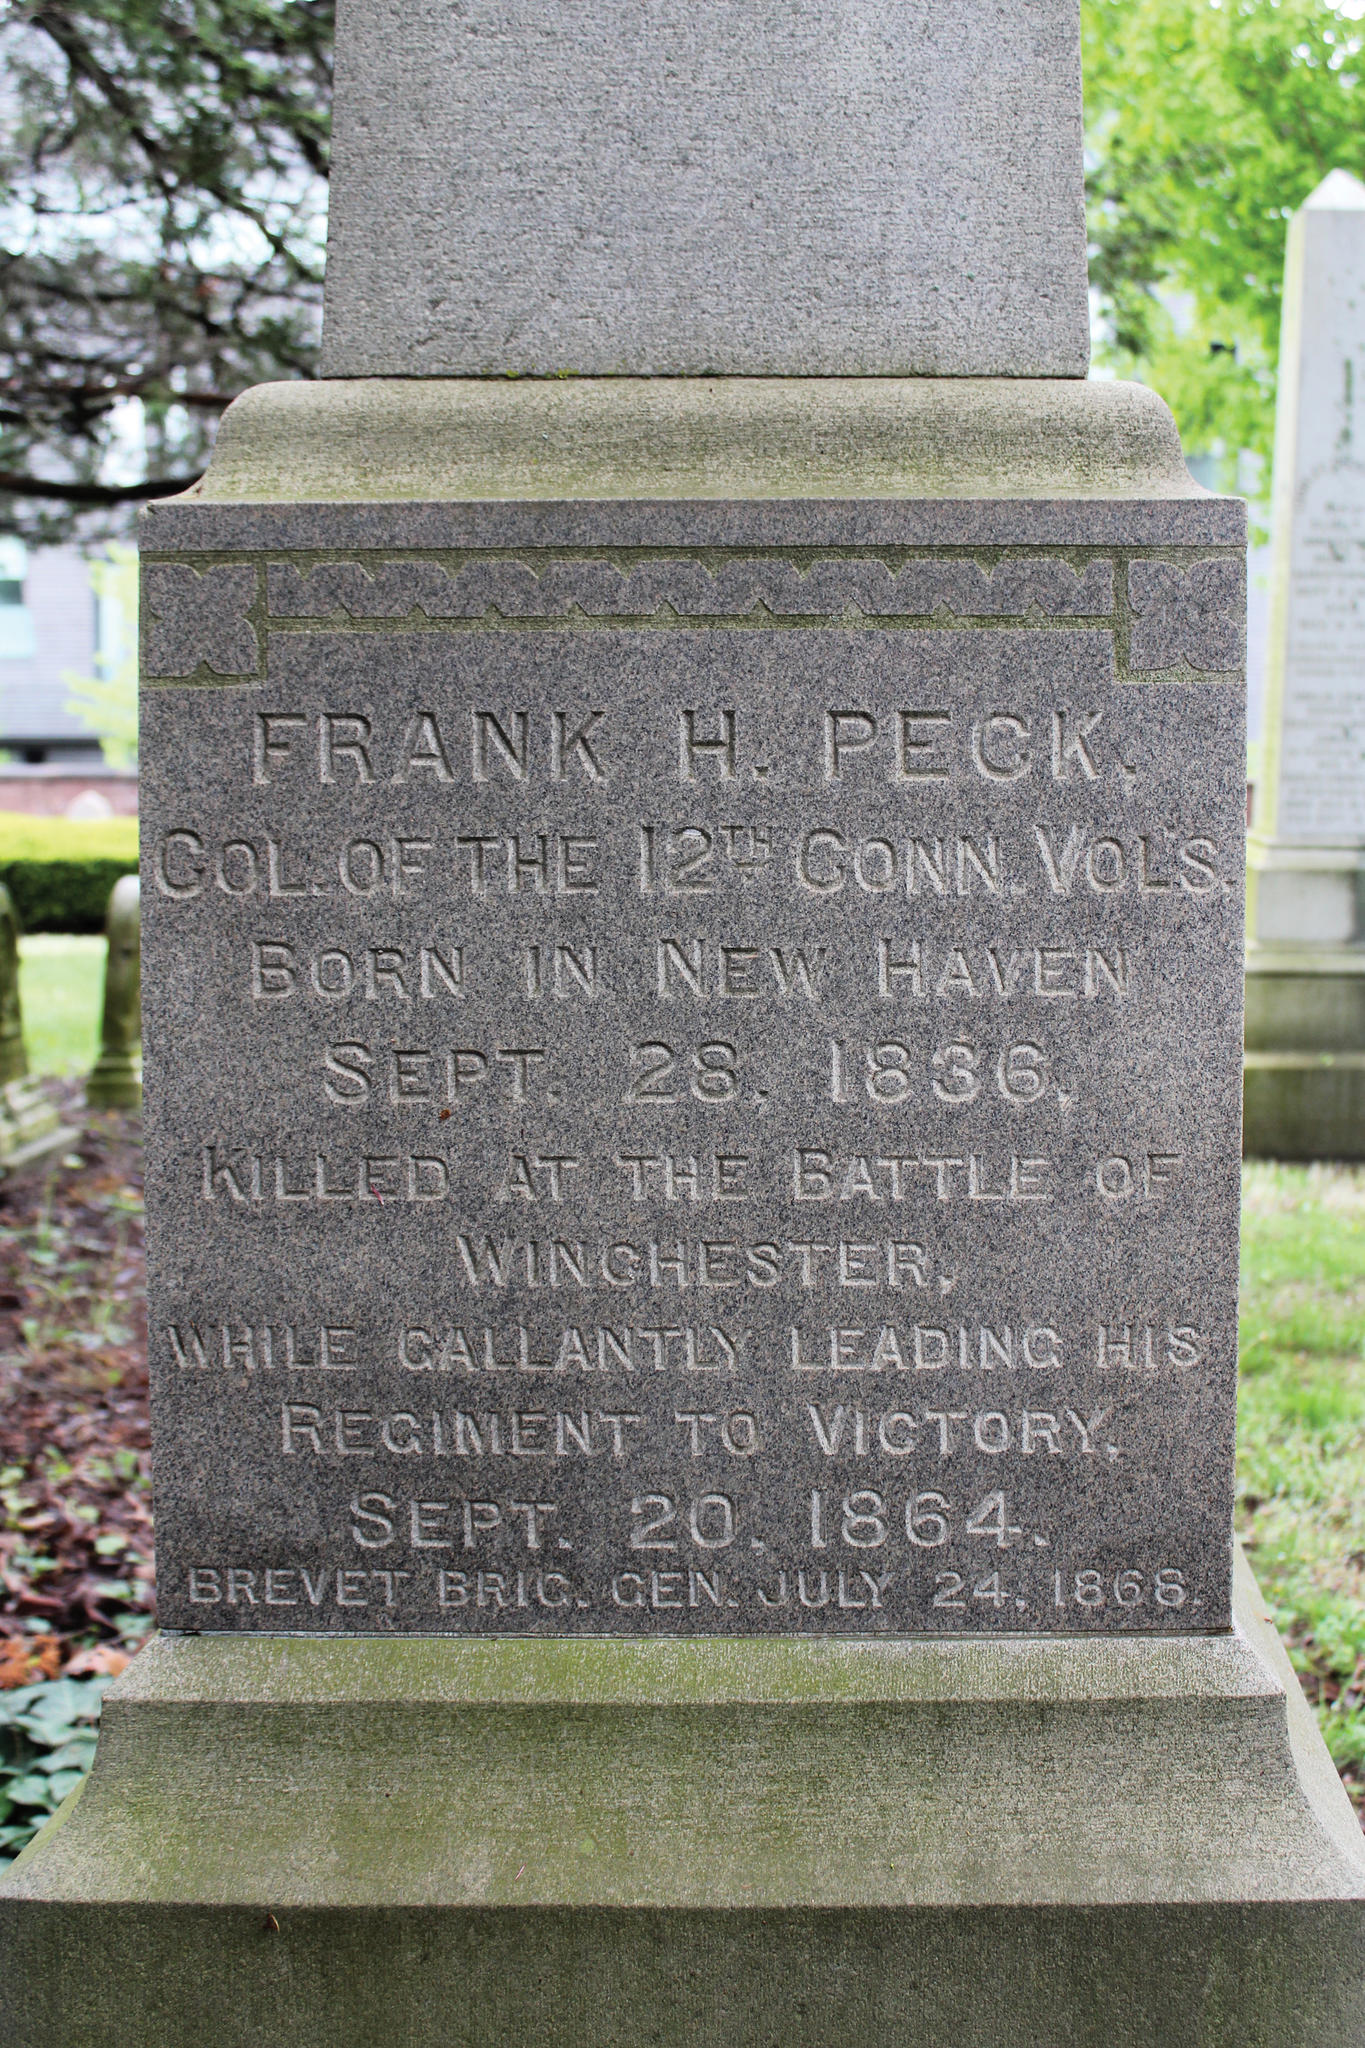 "<span><span style=""background-color:transparent"">Born in New Haven and graduated from Yale in 1856. He was appointed a major in the 12th Connecticut Volunteer Infantry and rose to Colonel. Peck was killed in action at the Third Battle of Winchester on September 19, 1864. He was posthumously breveted to Brigadier General of U.S. Volunteers for ""conspicuous gallantry at Winchester, Virginia.""</span></span><span><span style=""background-color:transparent"">Location: 77 Cedar</span></span>"